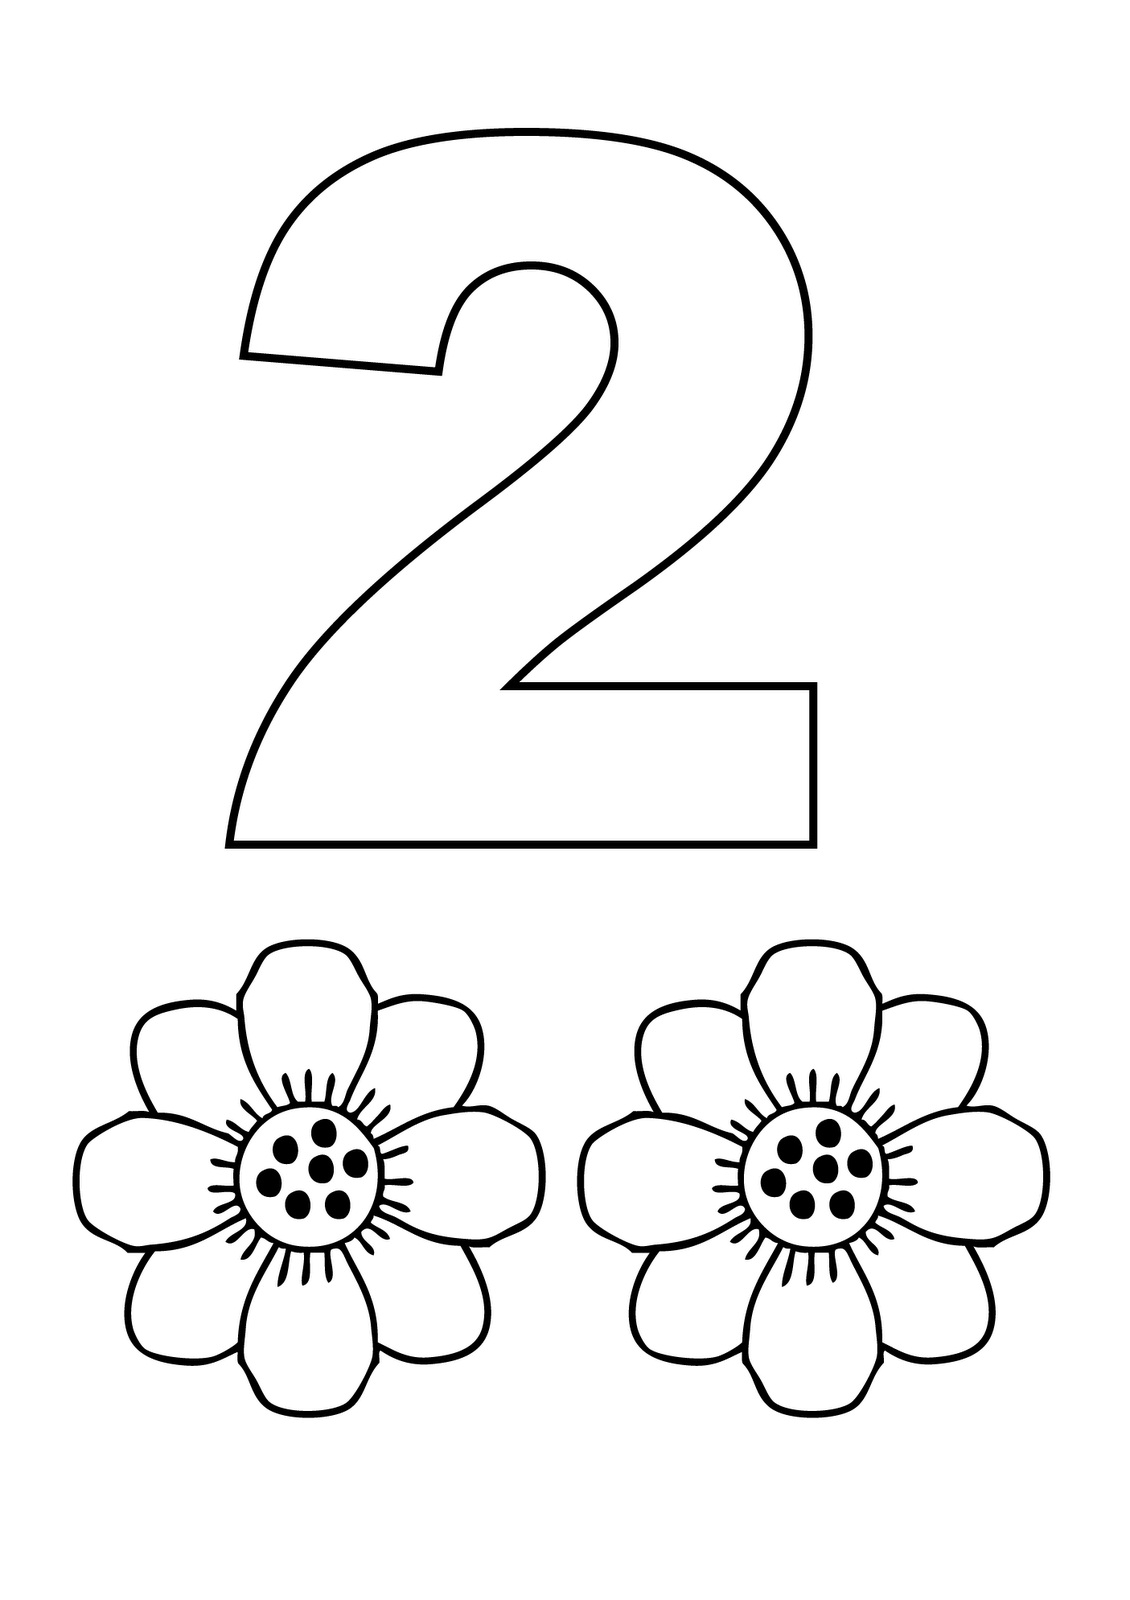 number 2 coloring page - Coloring Book Pages 2